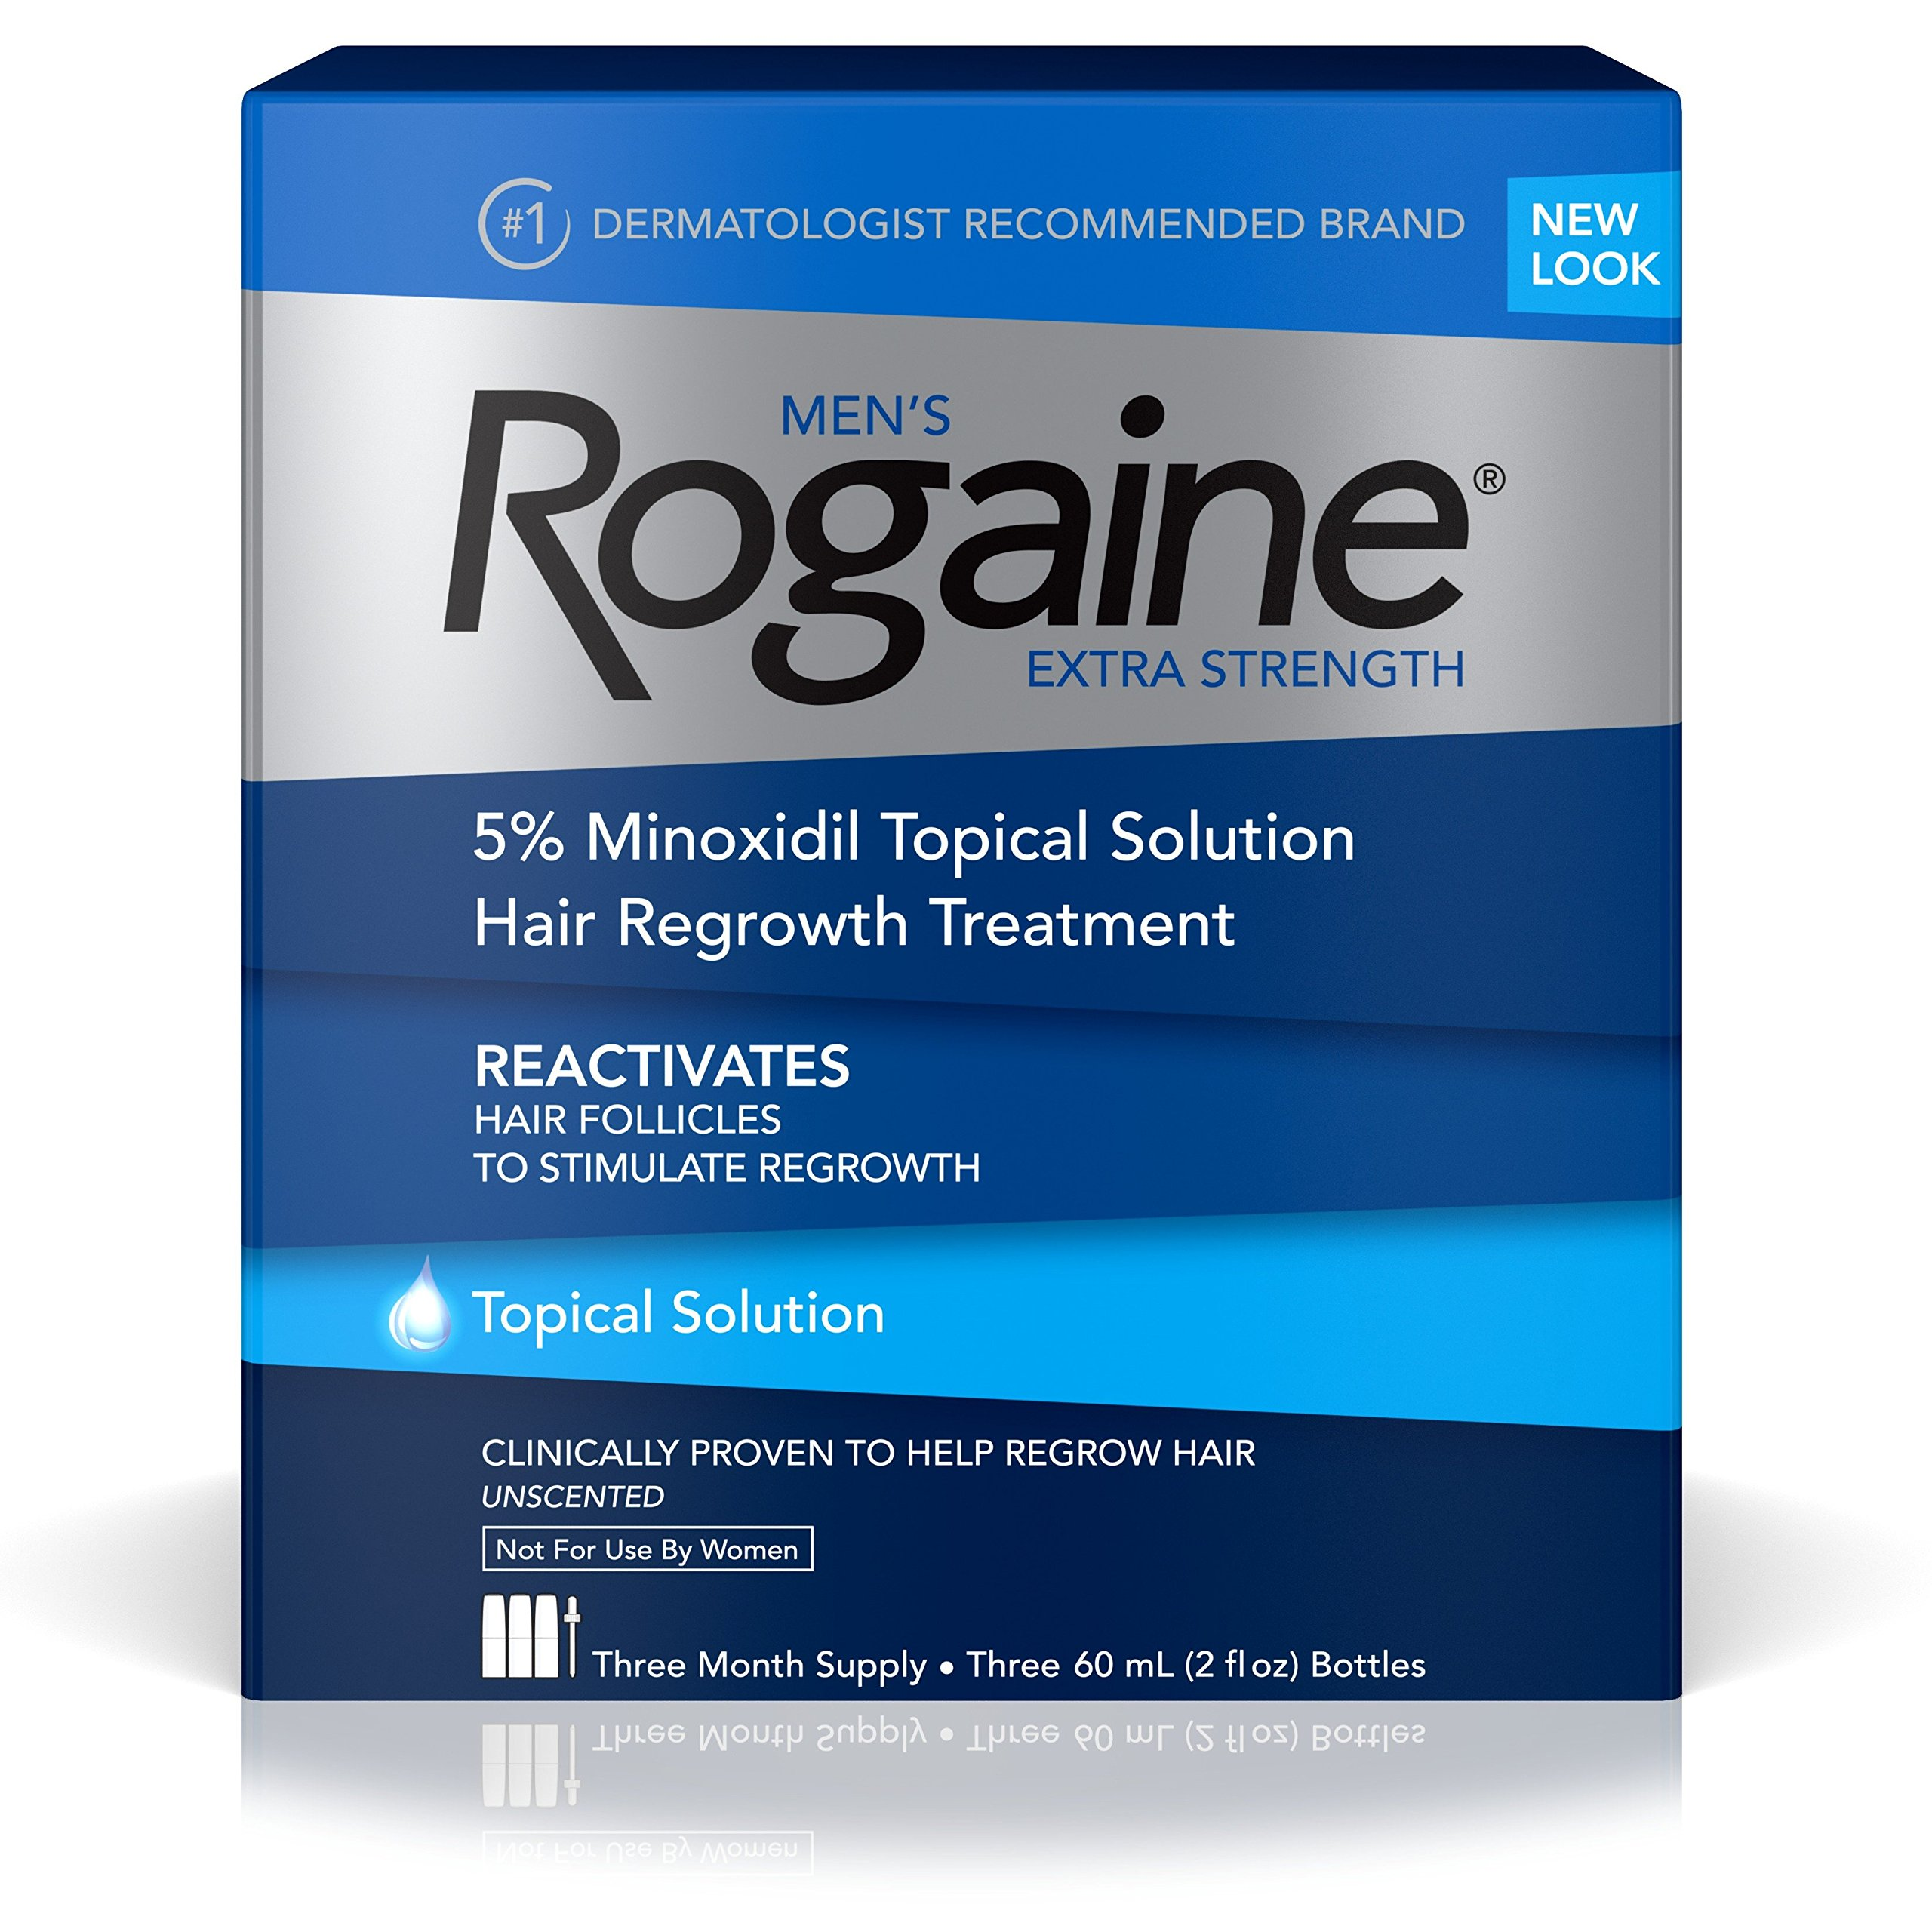 Men's Rogaine Extra Strength 5% Minoxidil Topical Solution for Hair Loss and Hair Regrowth, Topical Treatment for Thinning Hair, 3-Month Supply by Rogaine